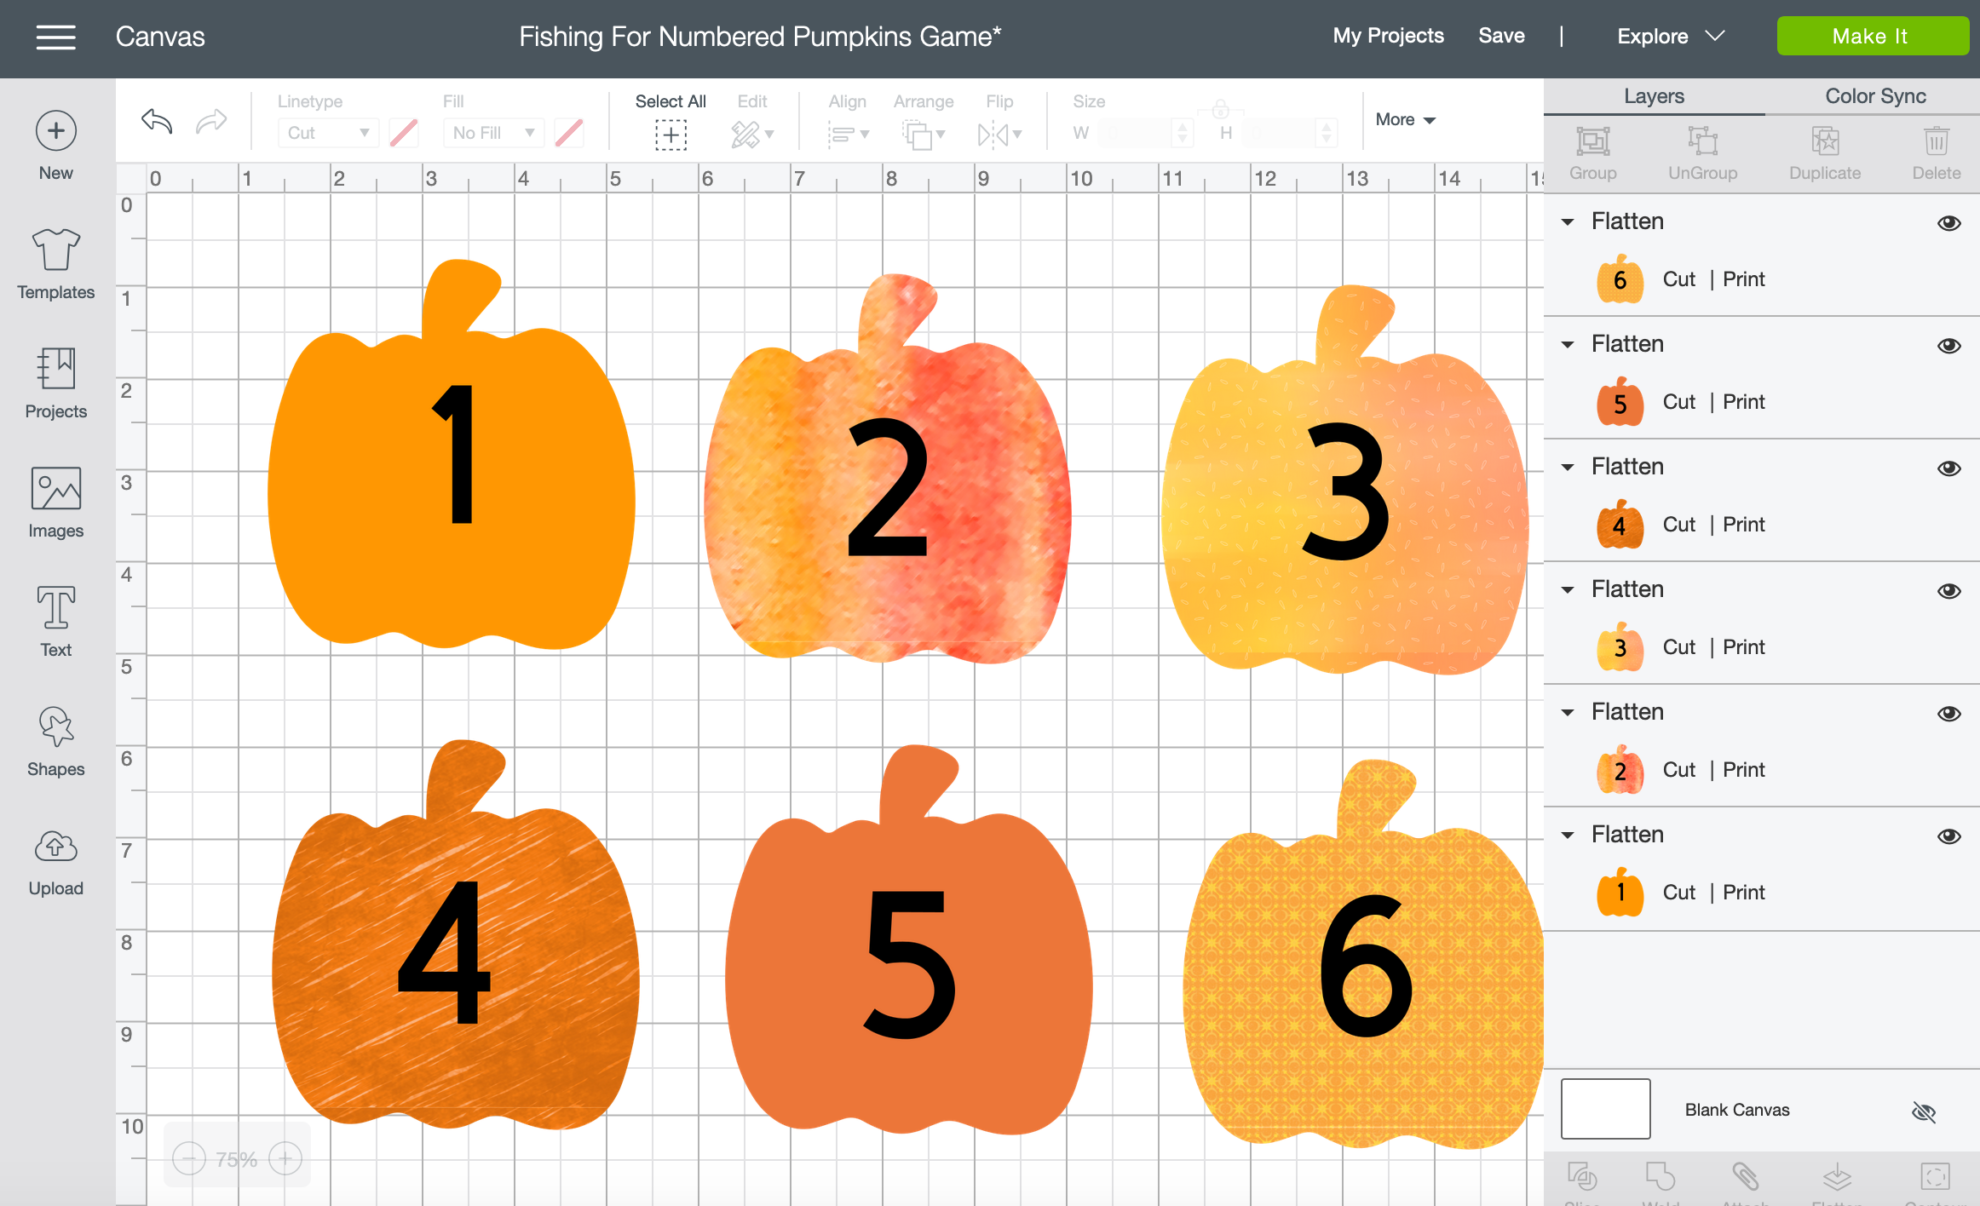 DIY Fishing for Numbered Pumpkins Game Cricut Design Space FREE Cut File